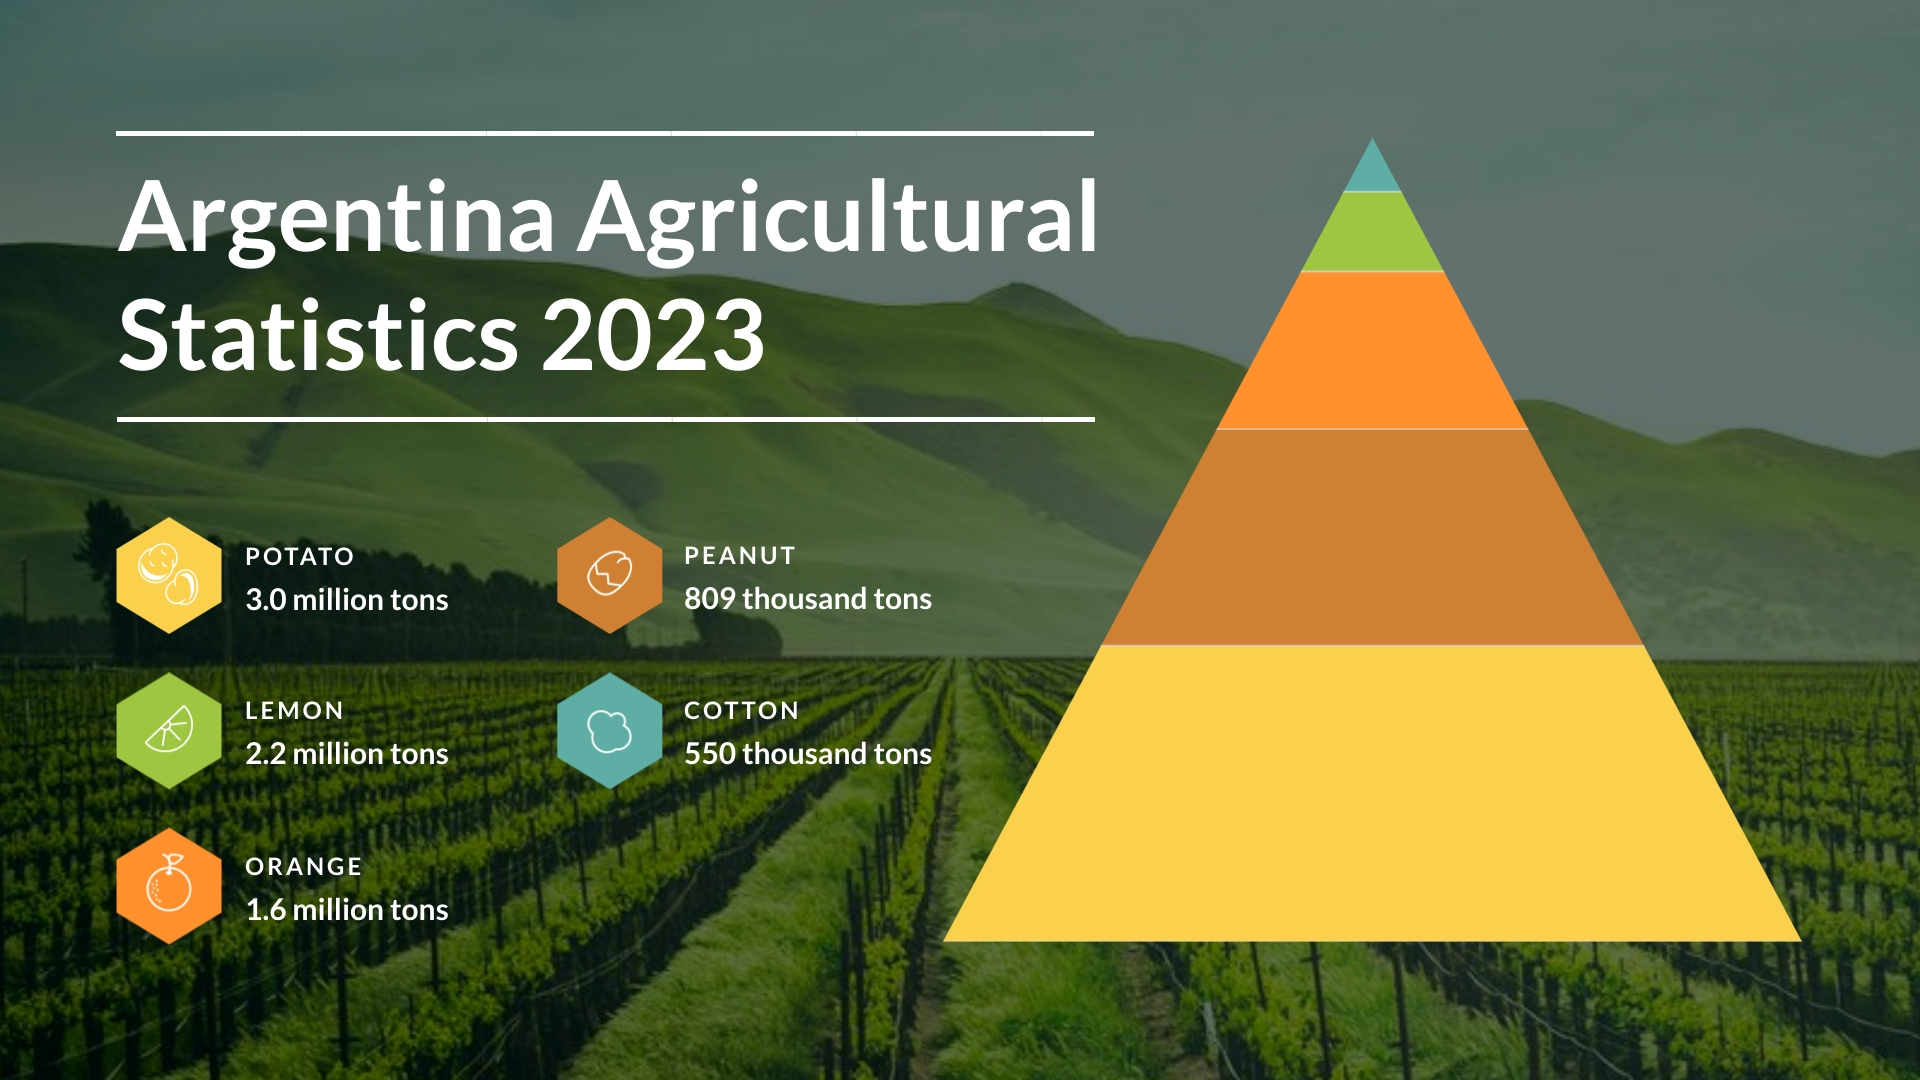 Agricultural Statistics - Pyramid Chart Template